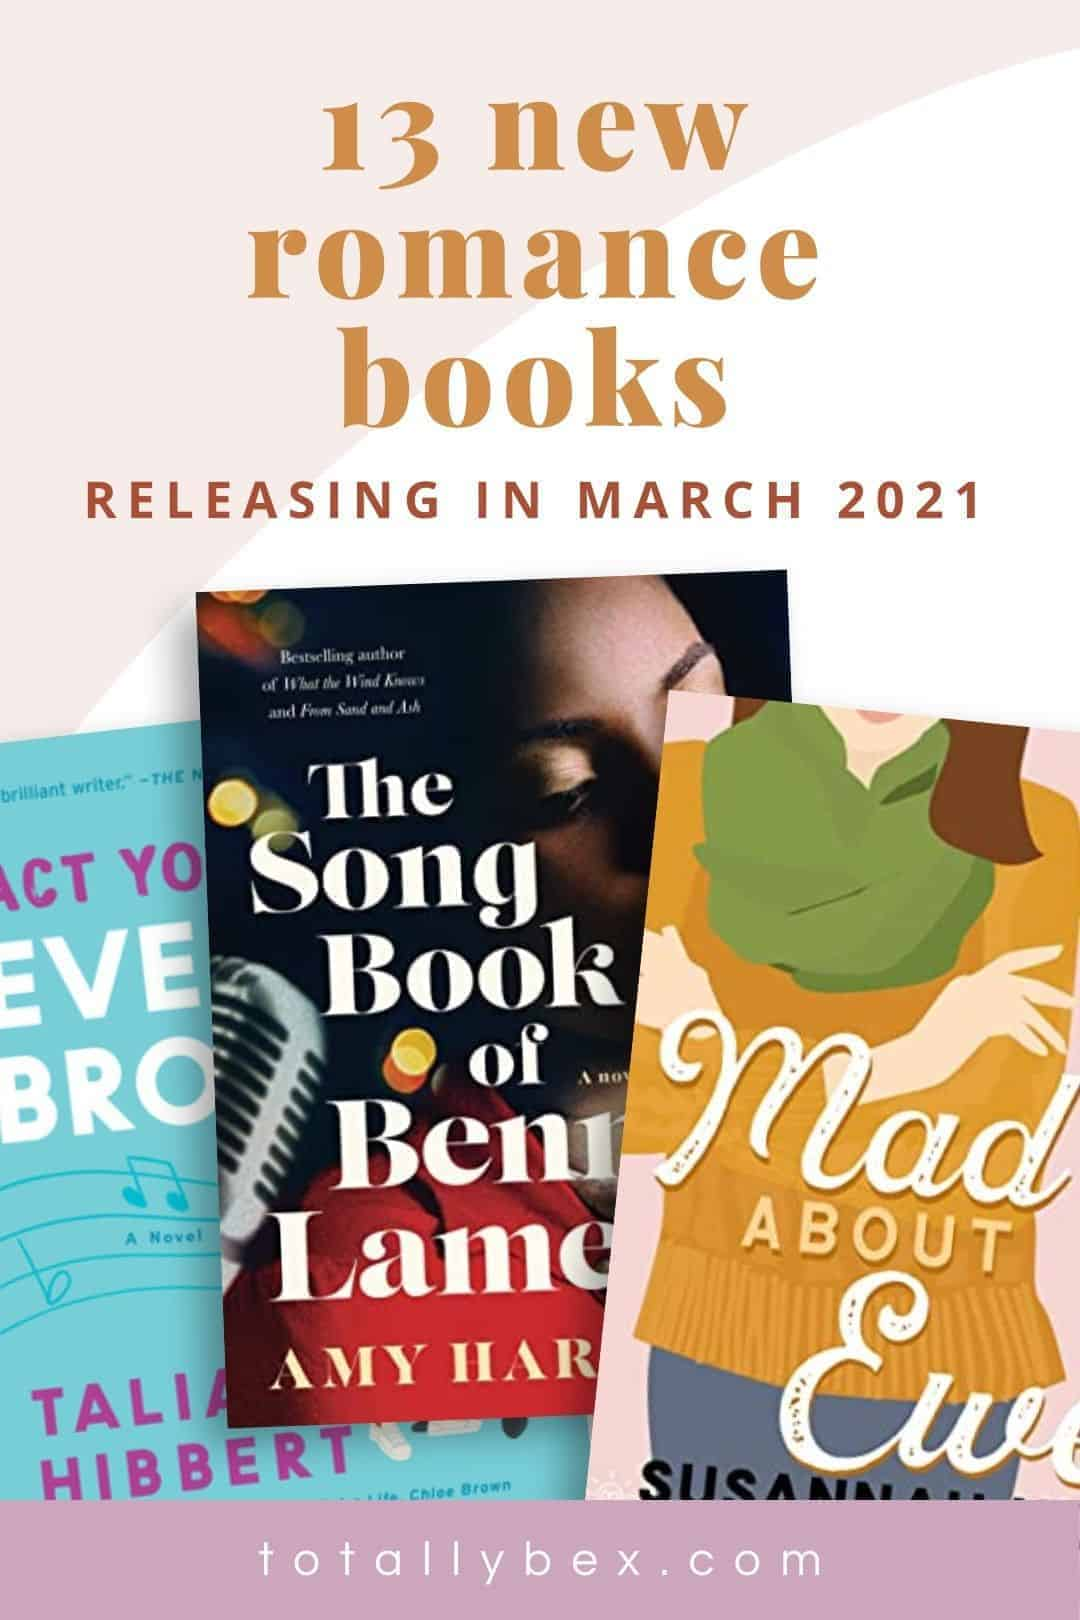 13 New Romance Books for March 2021 is a curated list of contemporary romance novels, historical romance novels, and slow burn romance books